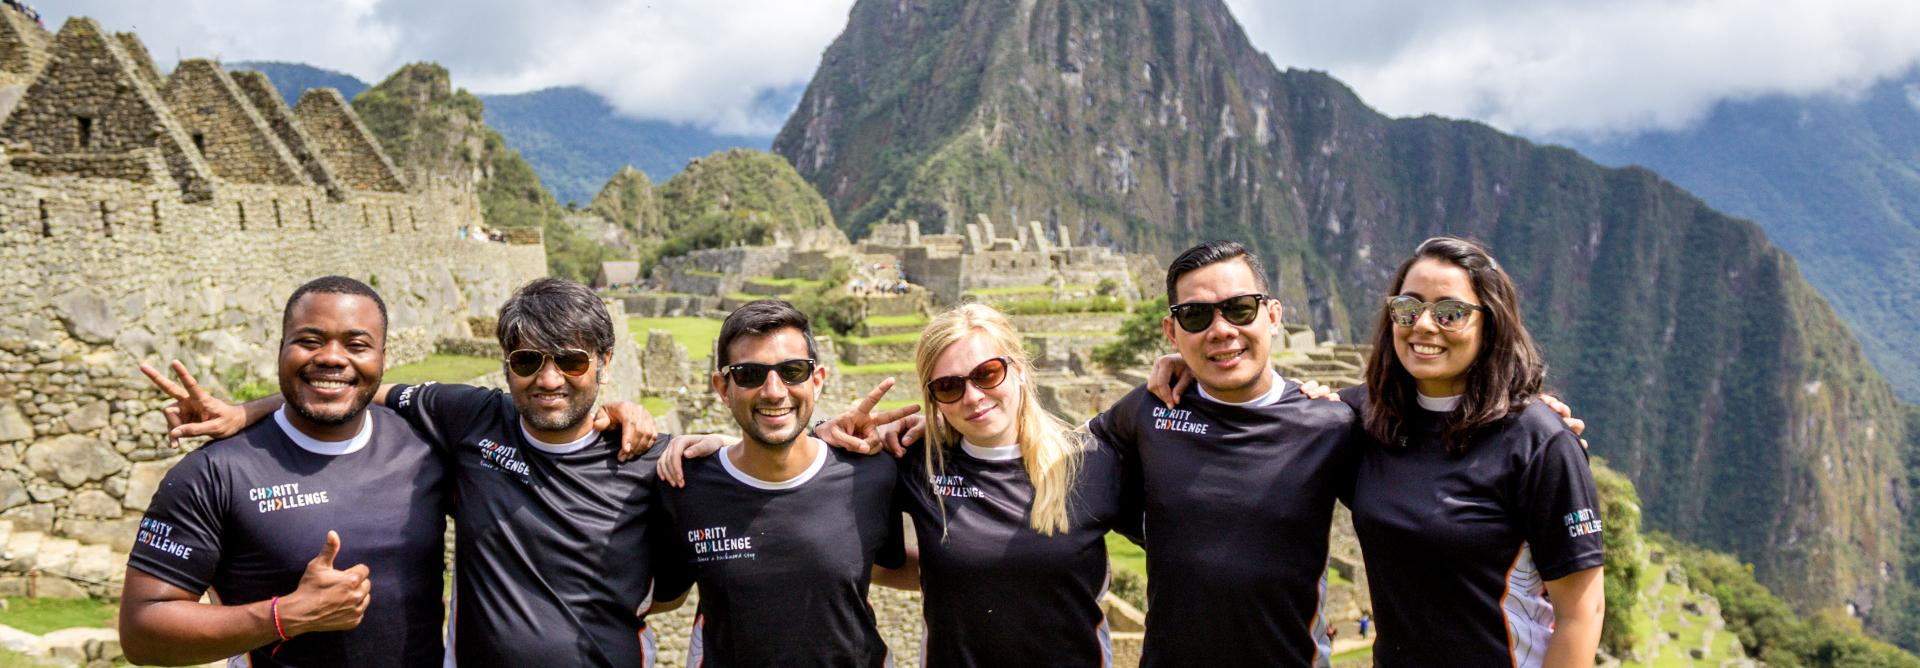 Charity Trek to Machu Picchu in Peru through the Lares Valley - charity challenge